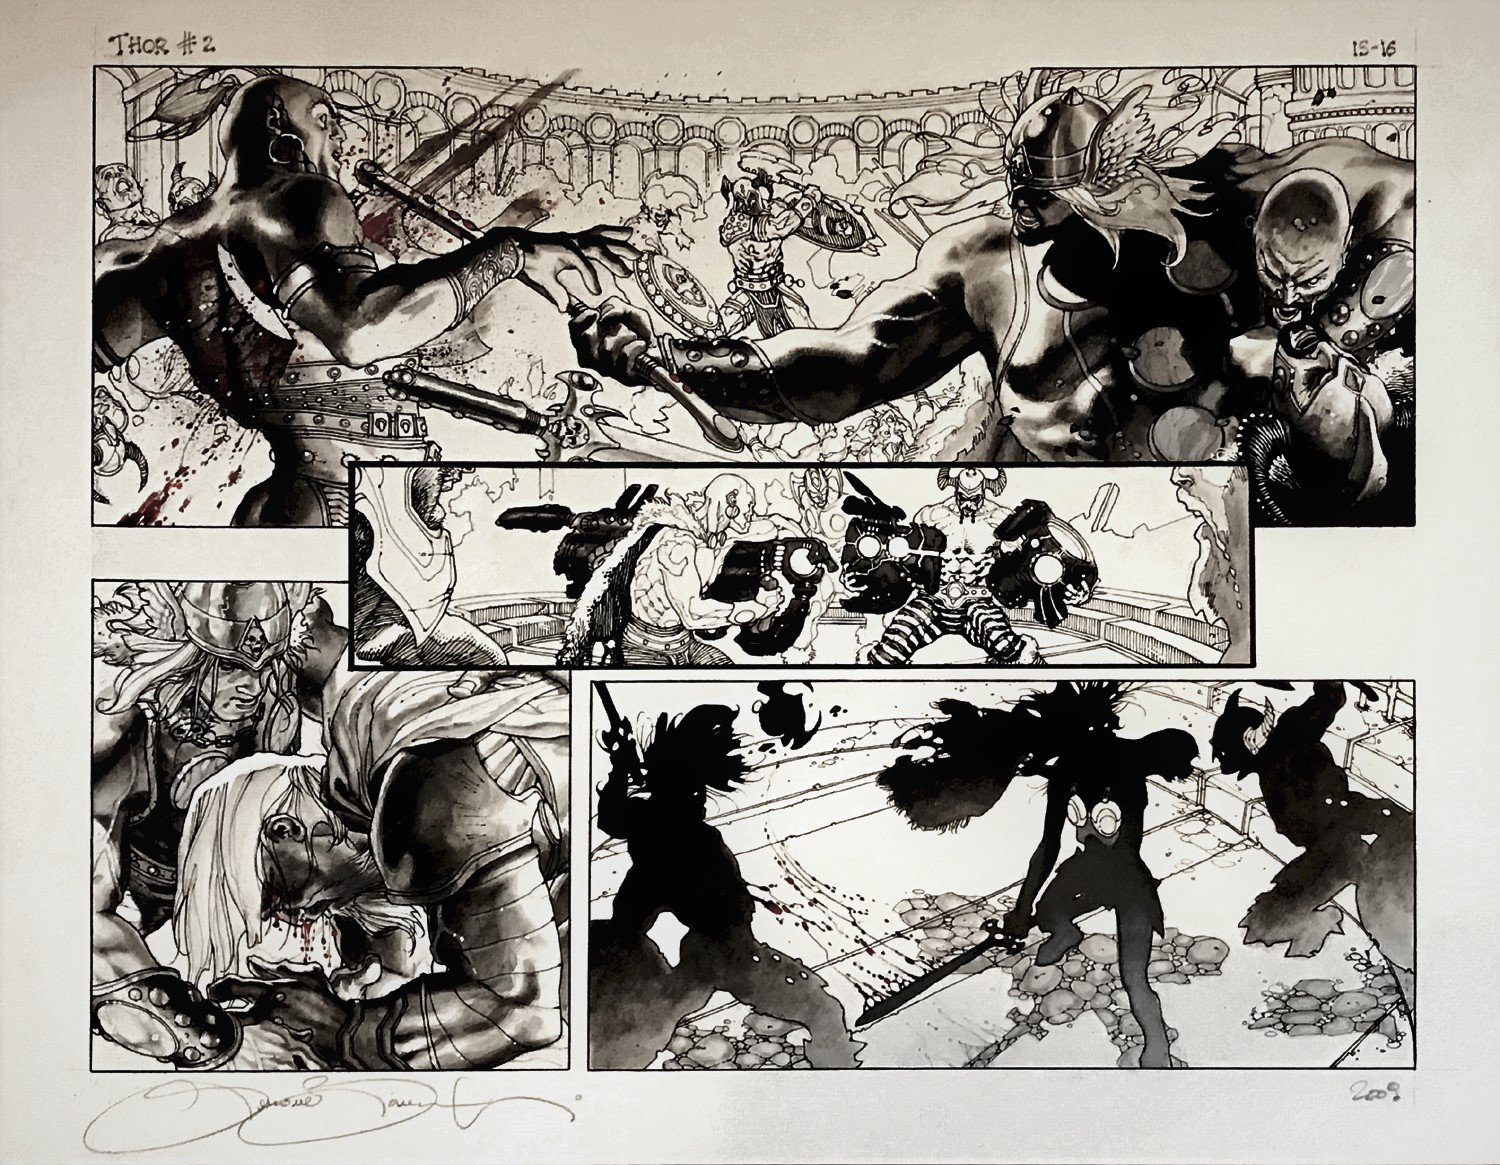 Thor: For Asgard #2 p 15-16 Double Page Spread (Very Large) 2010